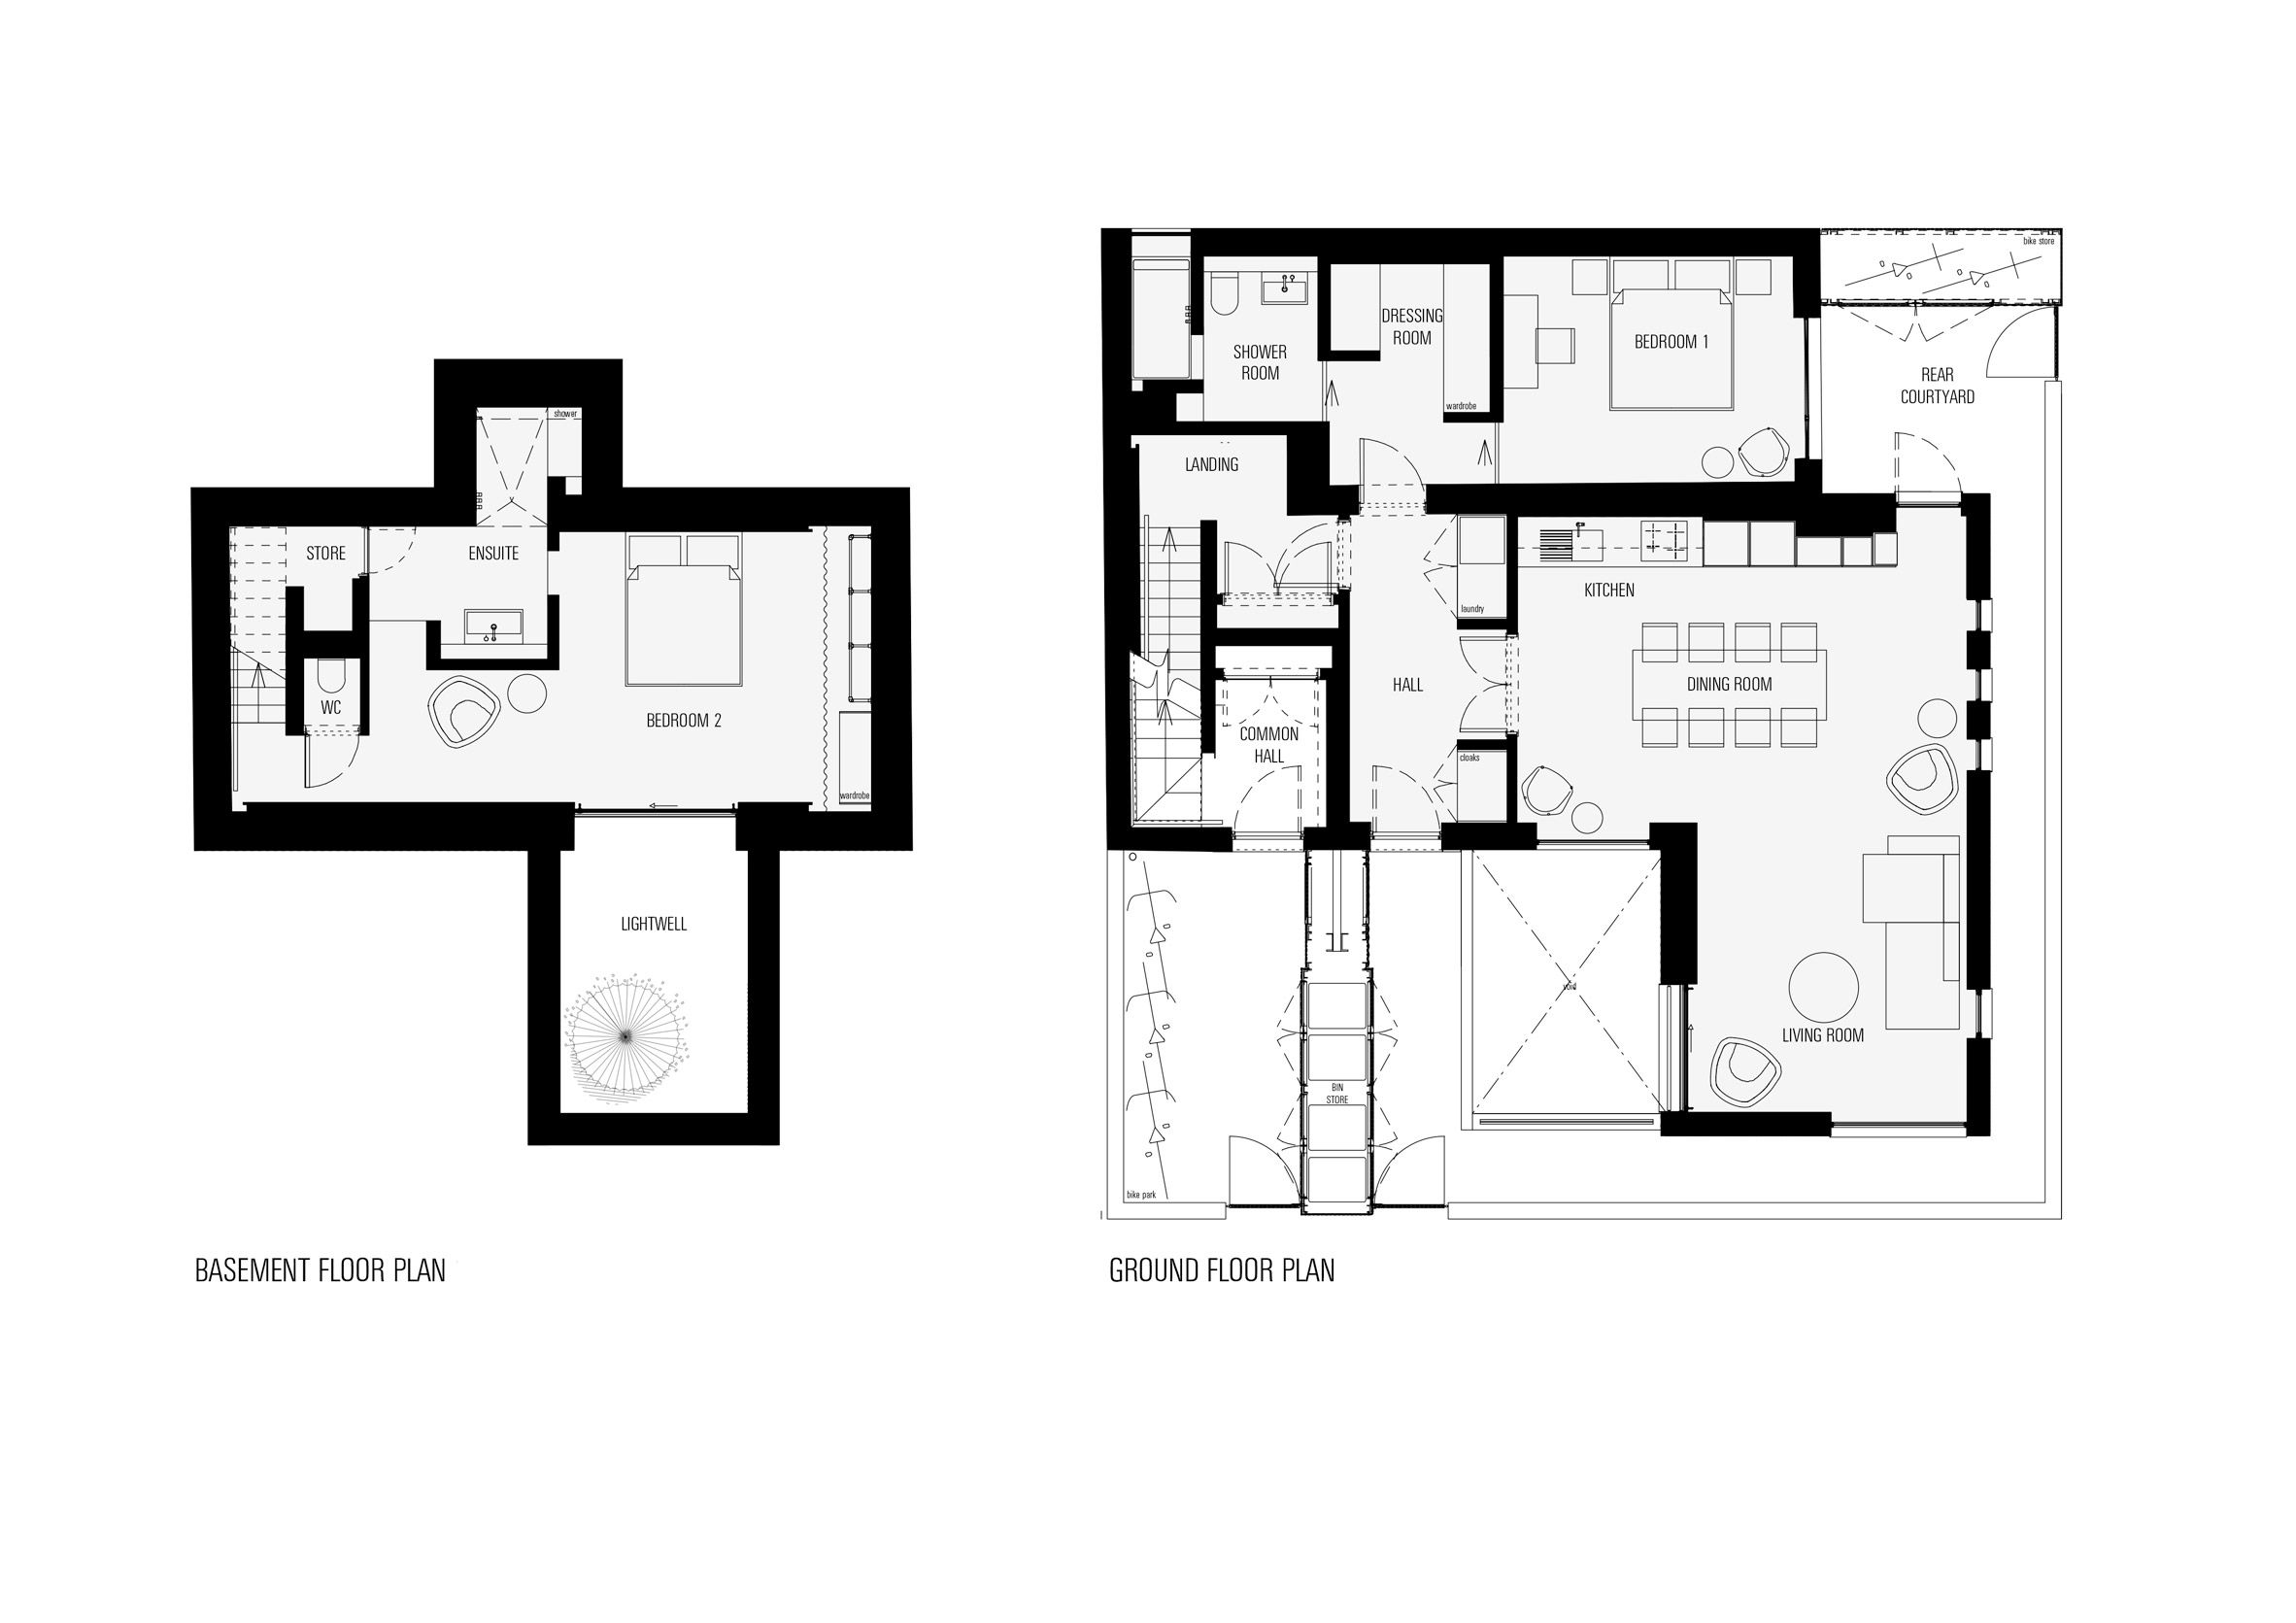 Pin By Thanh Ly On Floor Plans Floor Plans Basement Floor Plans Ground Floor Plan